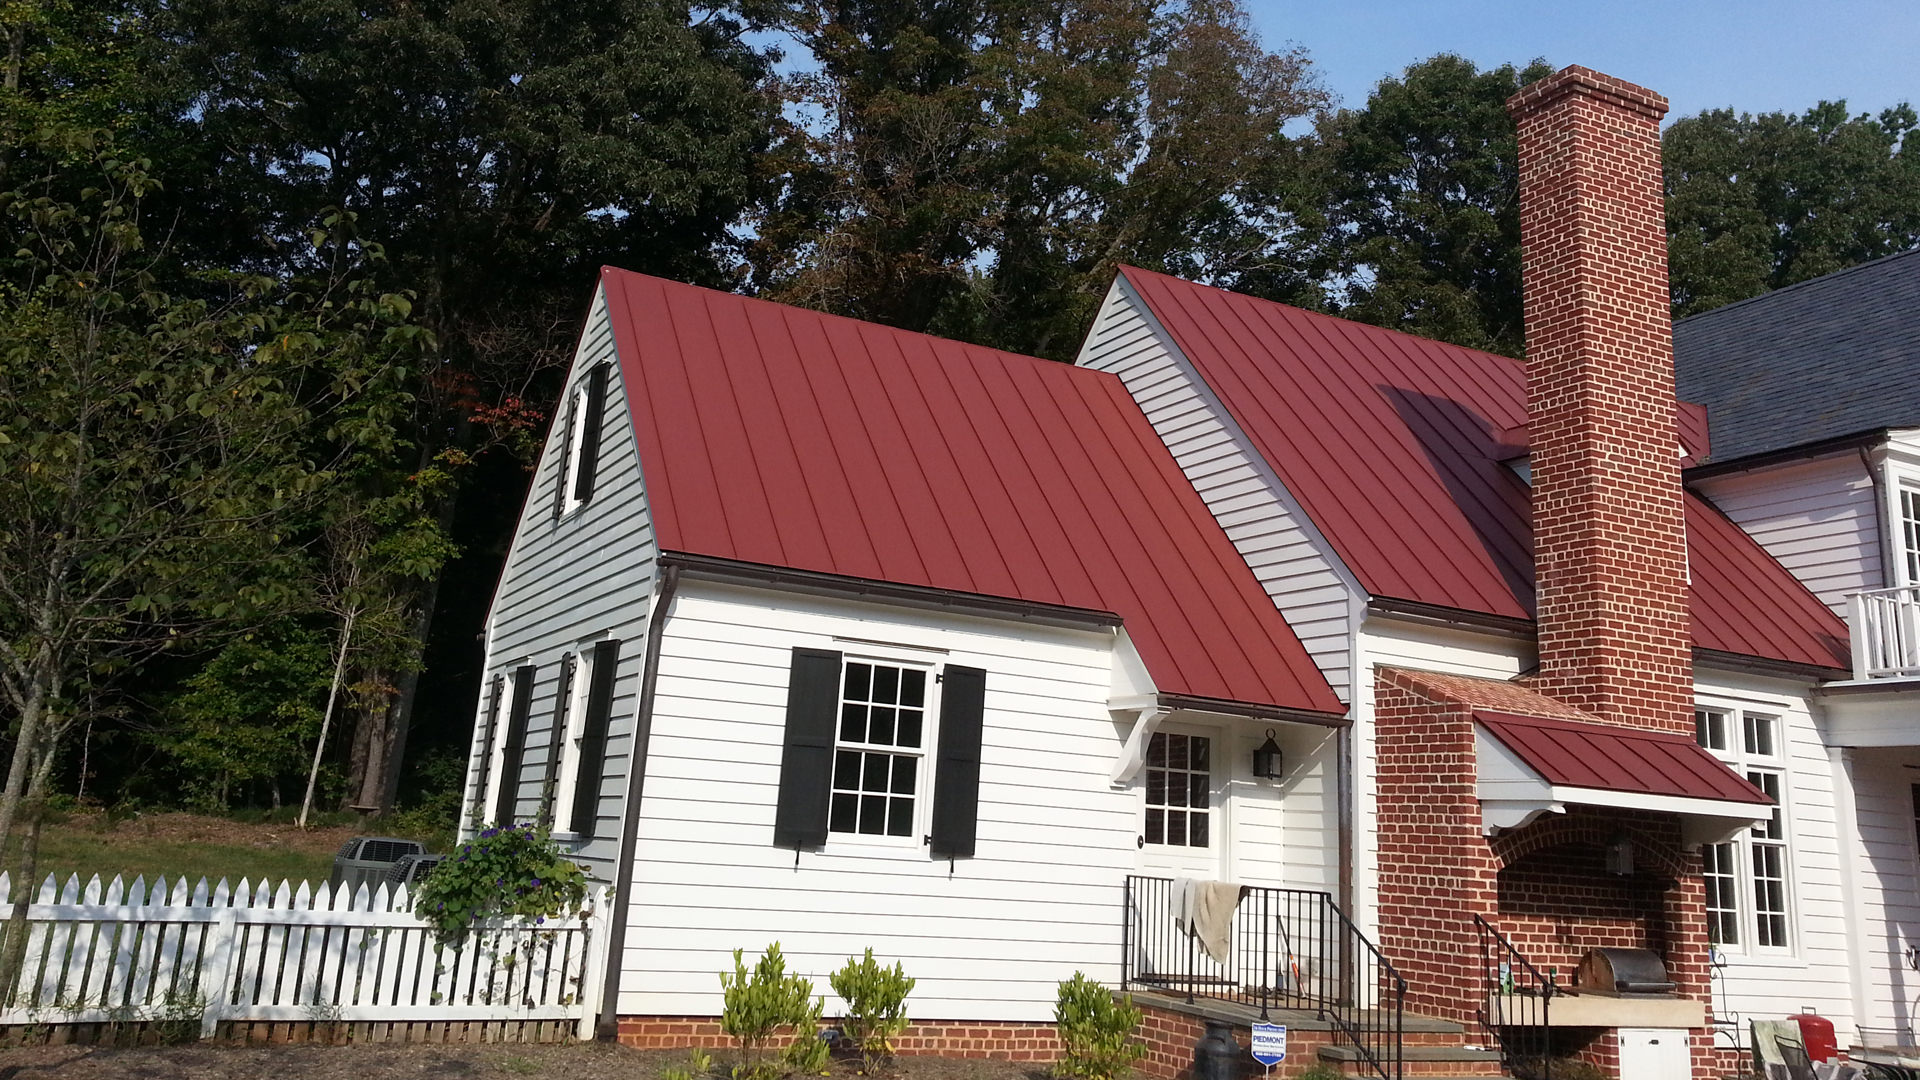 Mechanical double lock standing seam colonial red aluminum roof panel installation